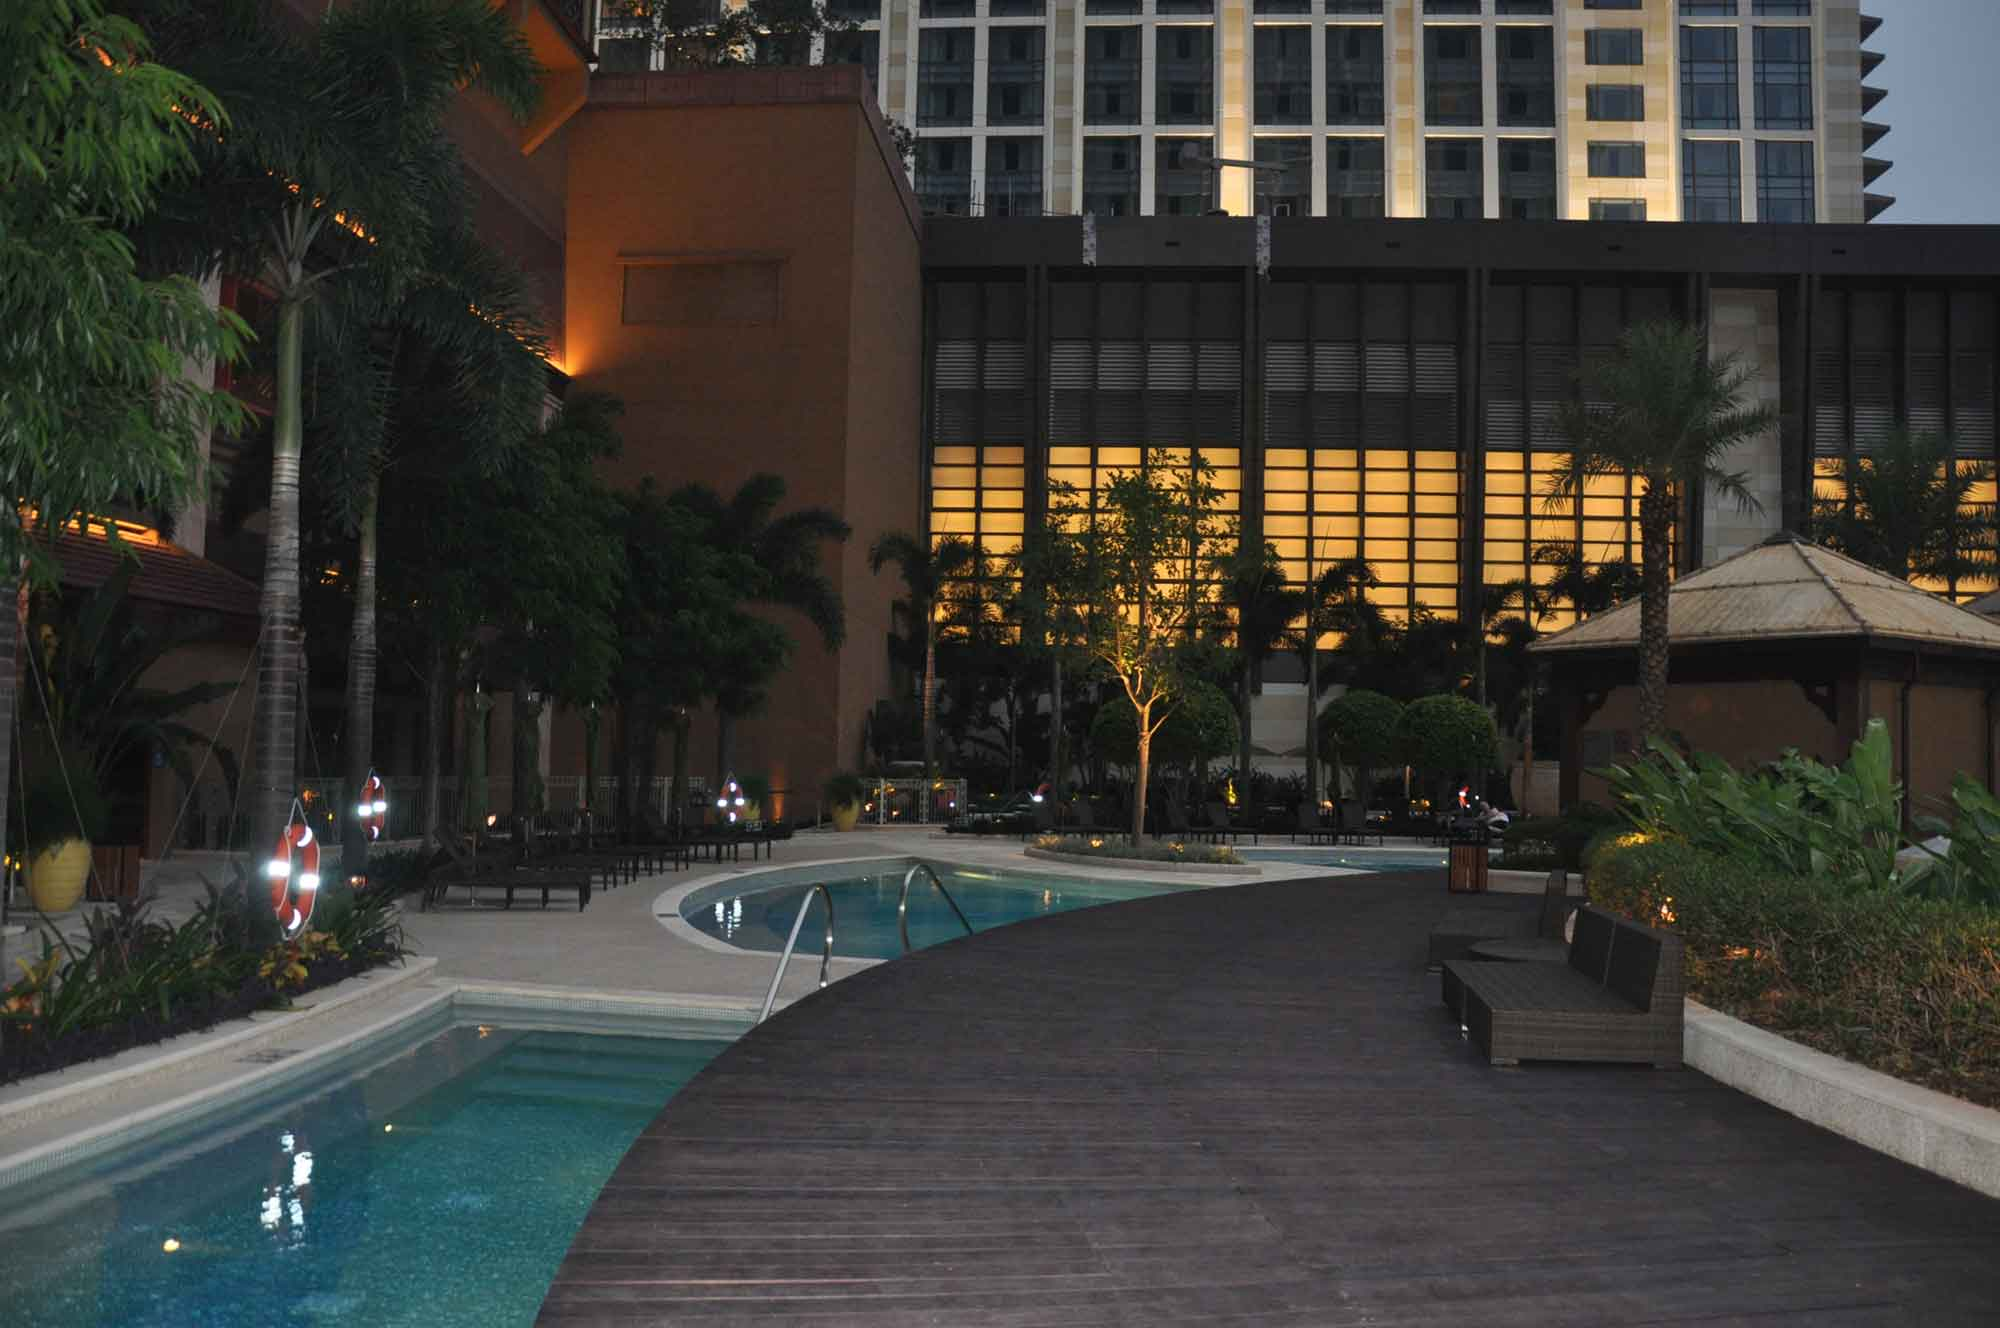 Sands Cotai Sheraton Hotel outdoor pool